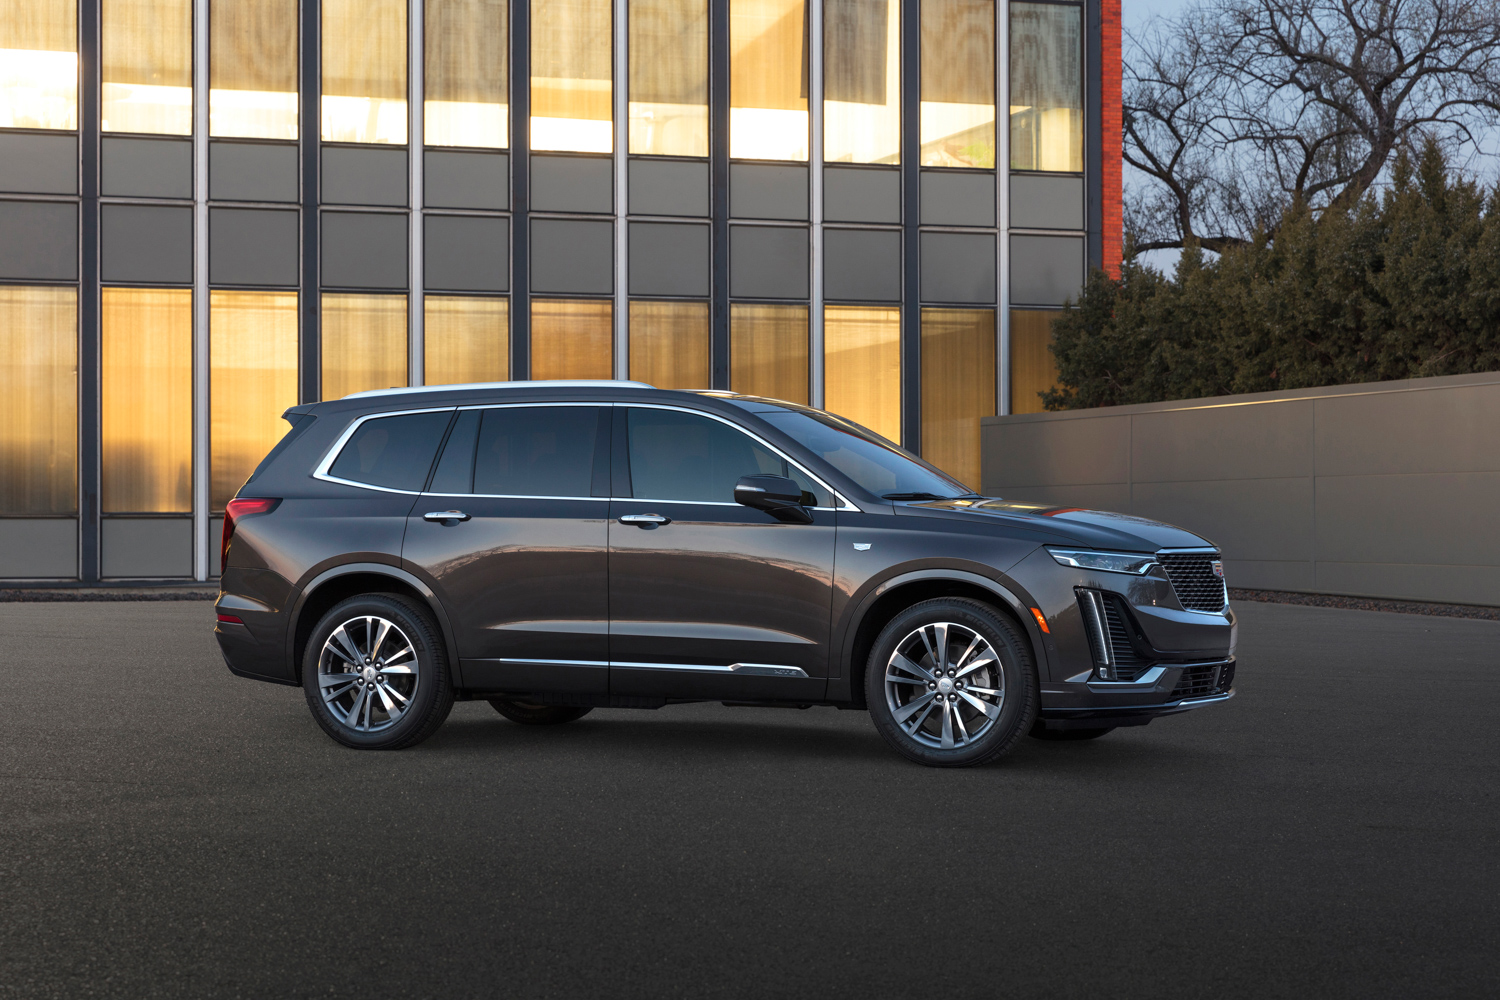 2020 Cadillac XT6 side profile